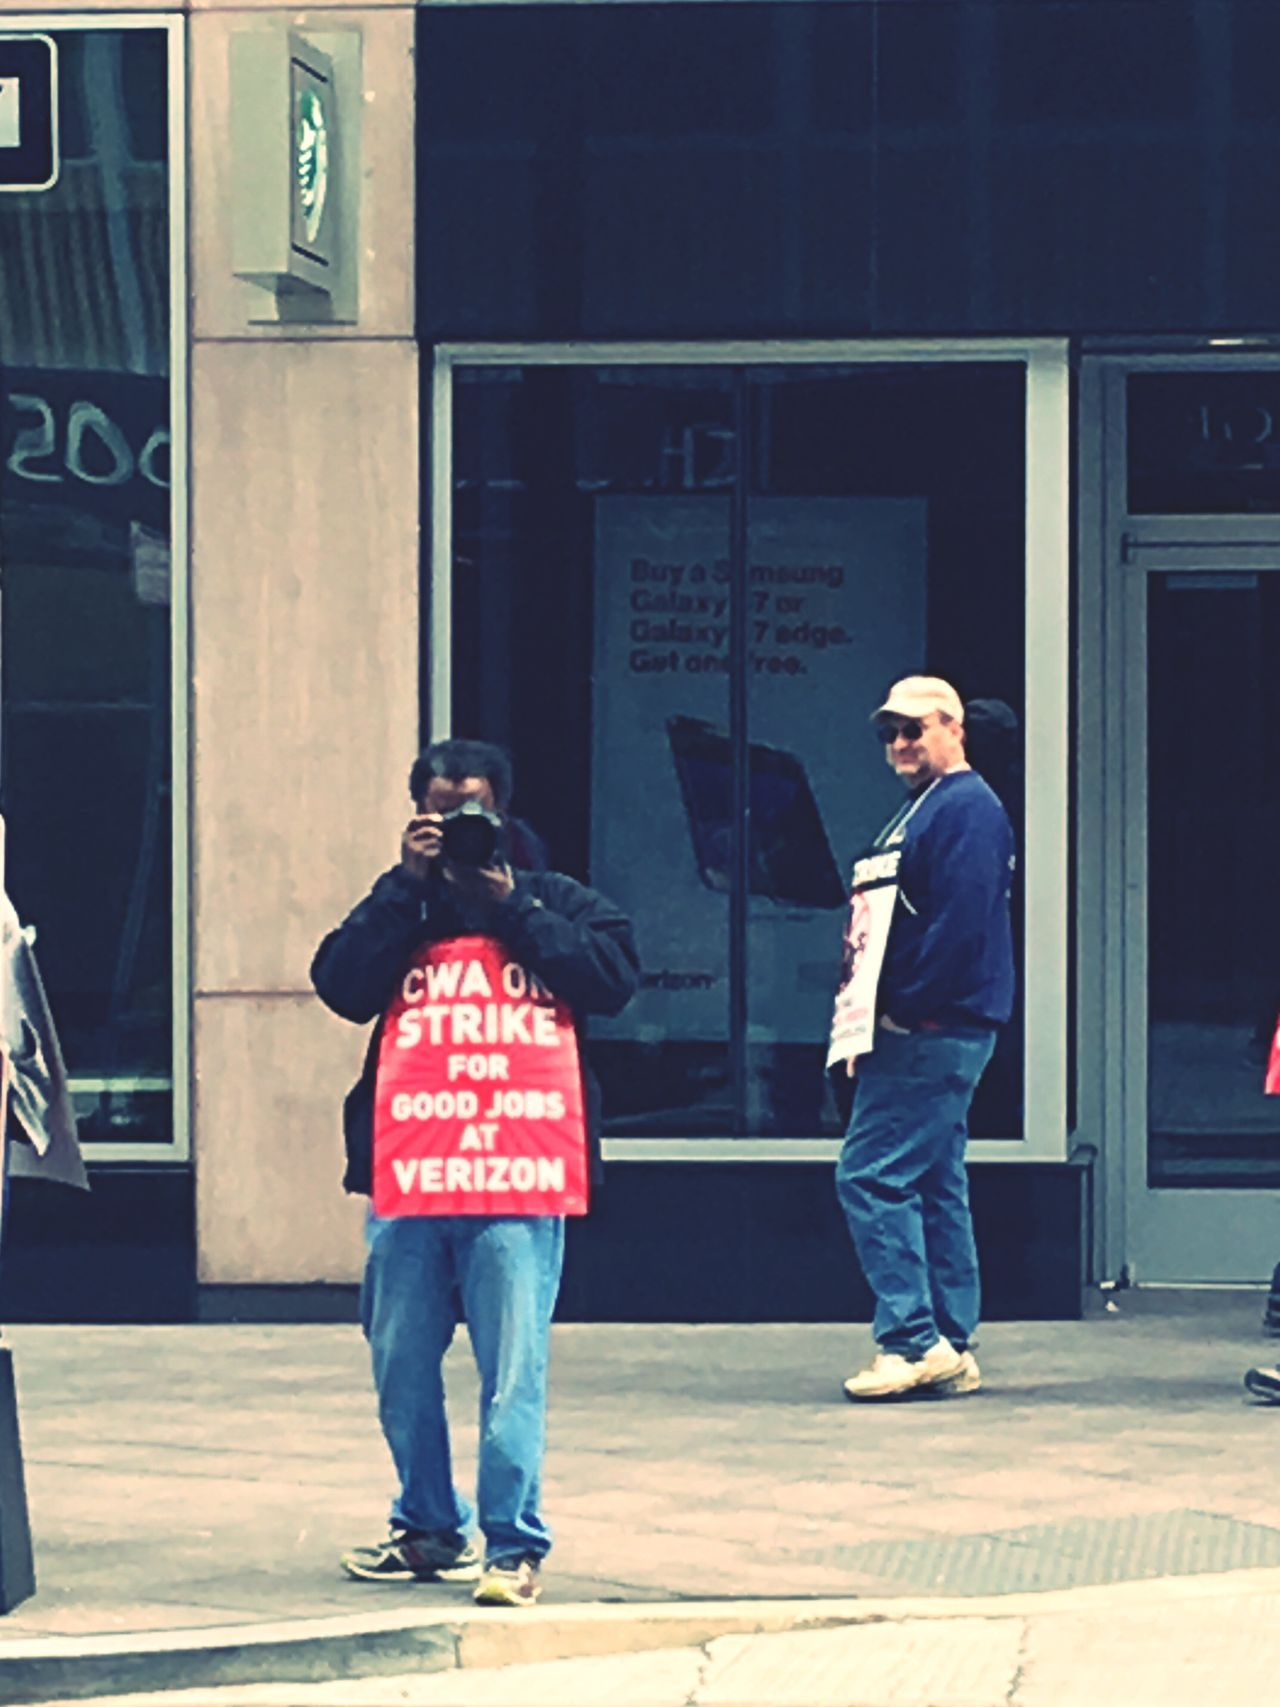 Strike! Verizon L Street Downtown Downtown DC Jobs Photographer Red Sign Statment Lens Spring Shopping Center Franchise NW DC